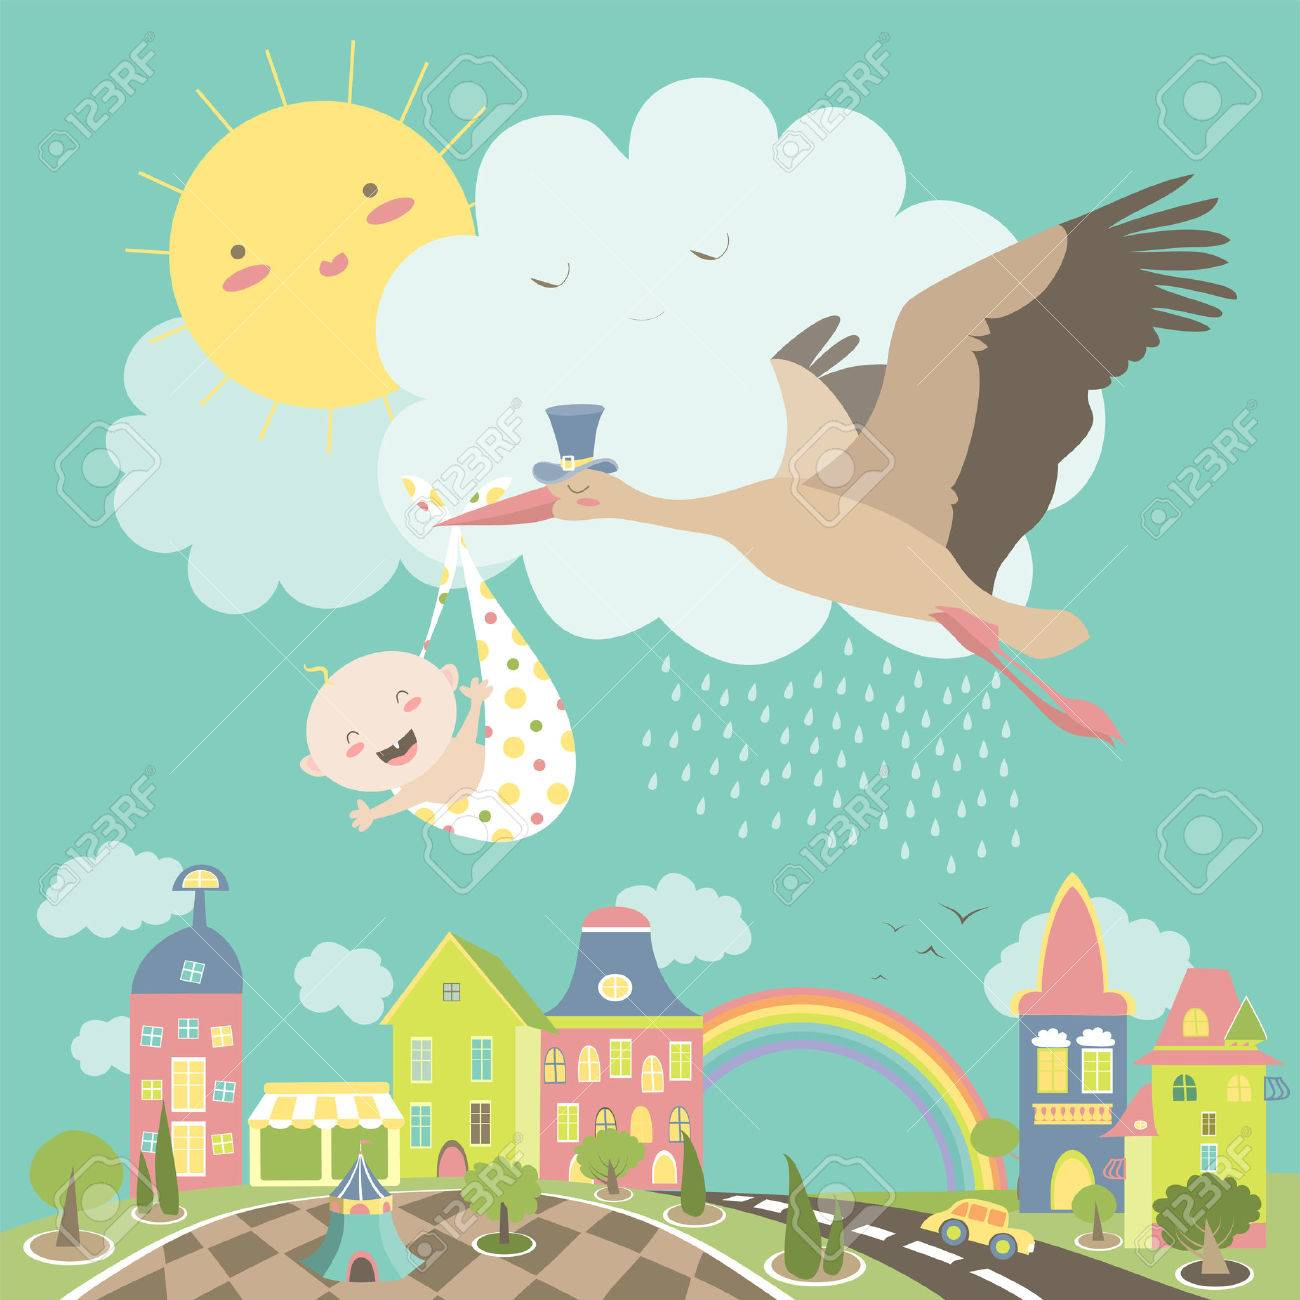 Stork is flying in the sky with baby above the city. illustration - 55146212